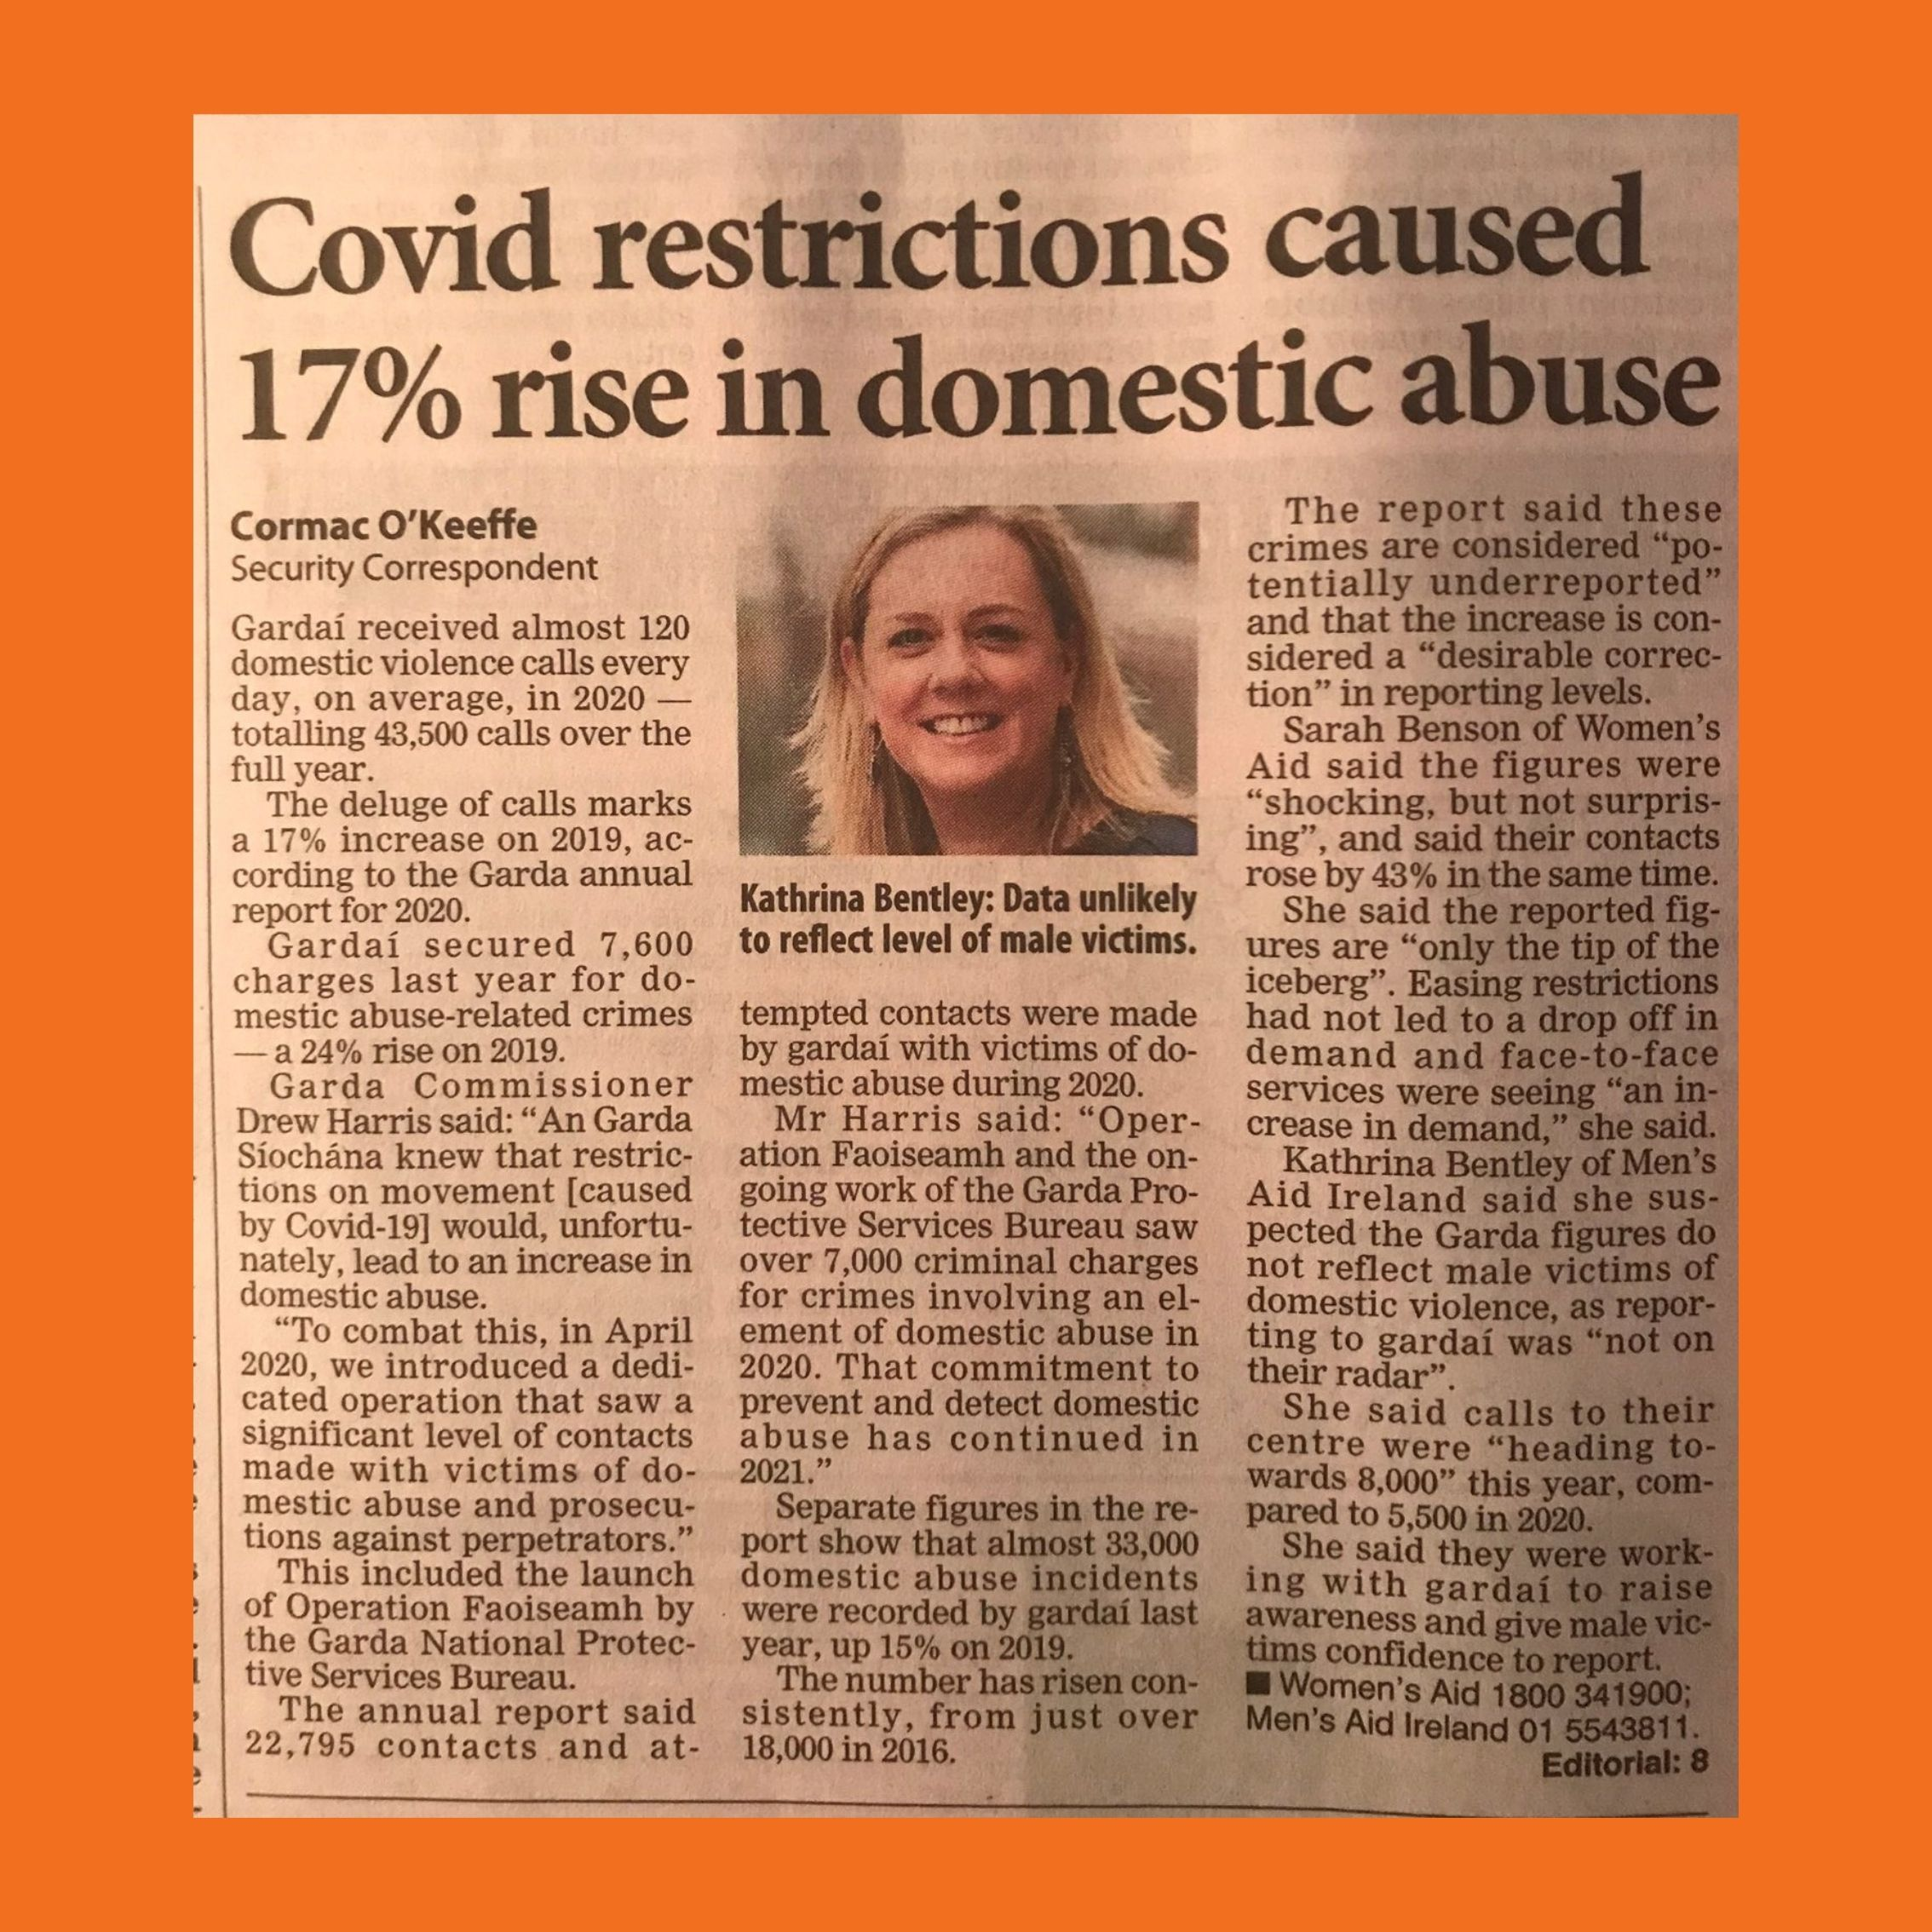 Covid restrictions caused 17% rise in domestic abuse